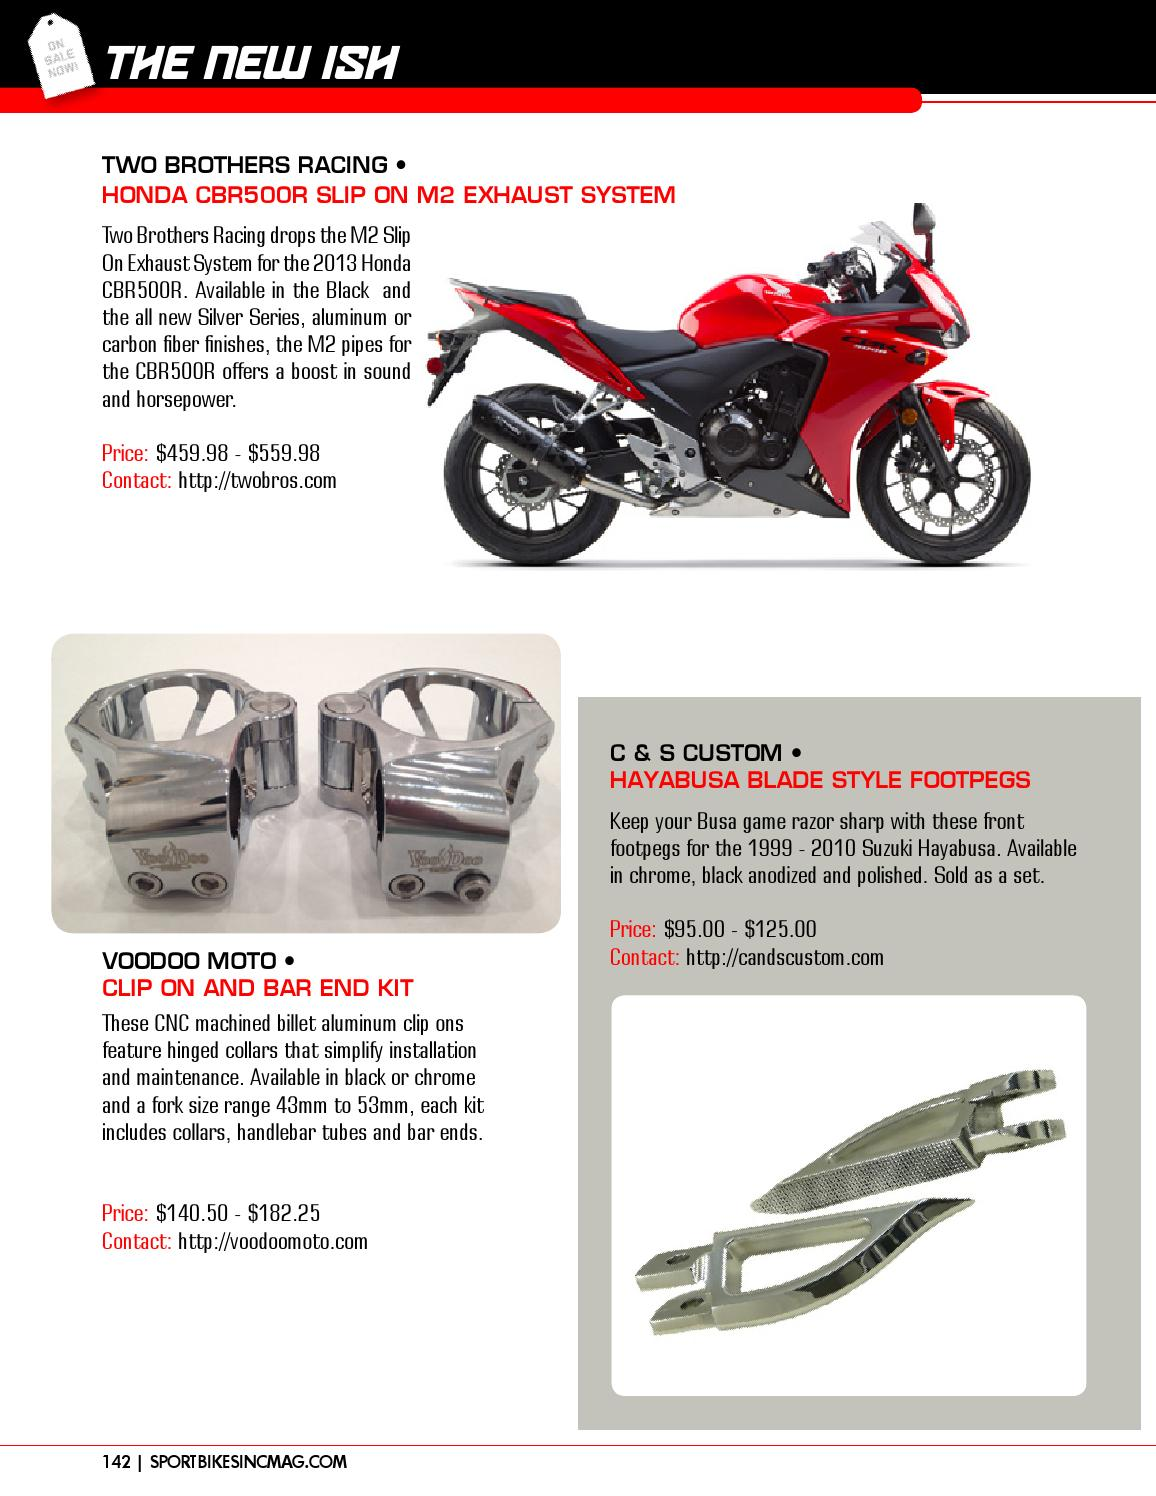 SportBikes Inc Magazine May 2013 (Volume 3, Issue 8) by Hard